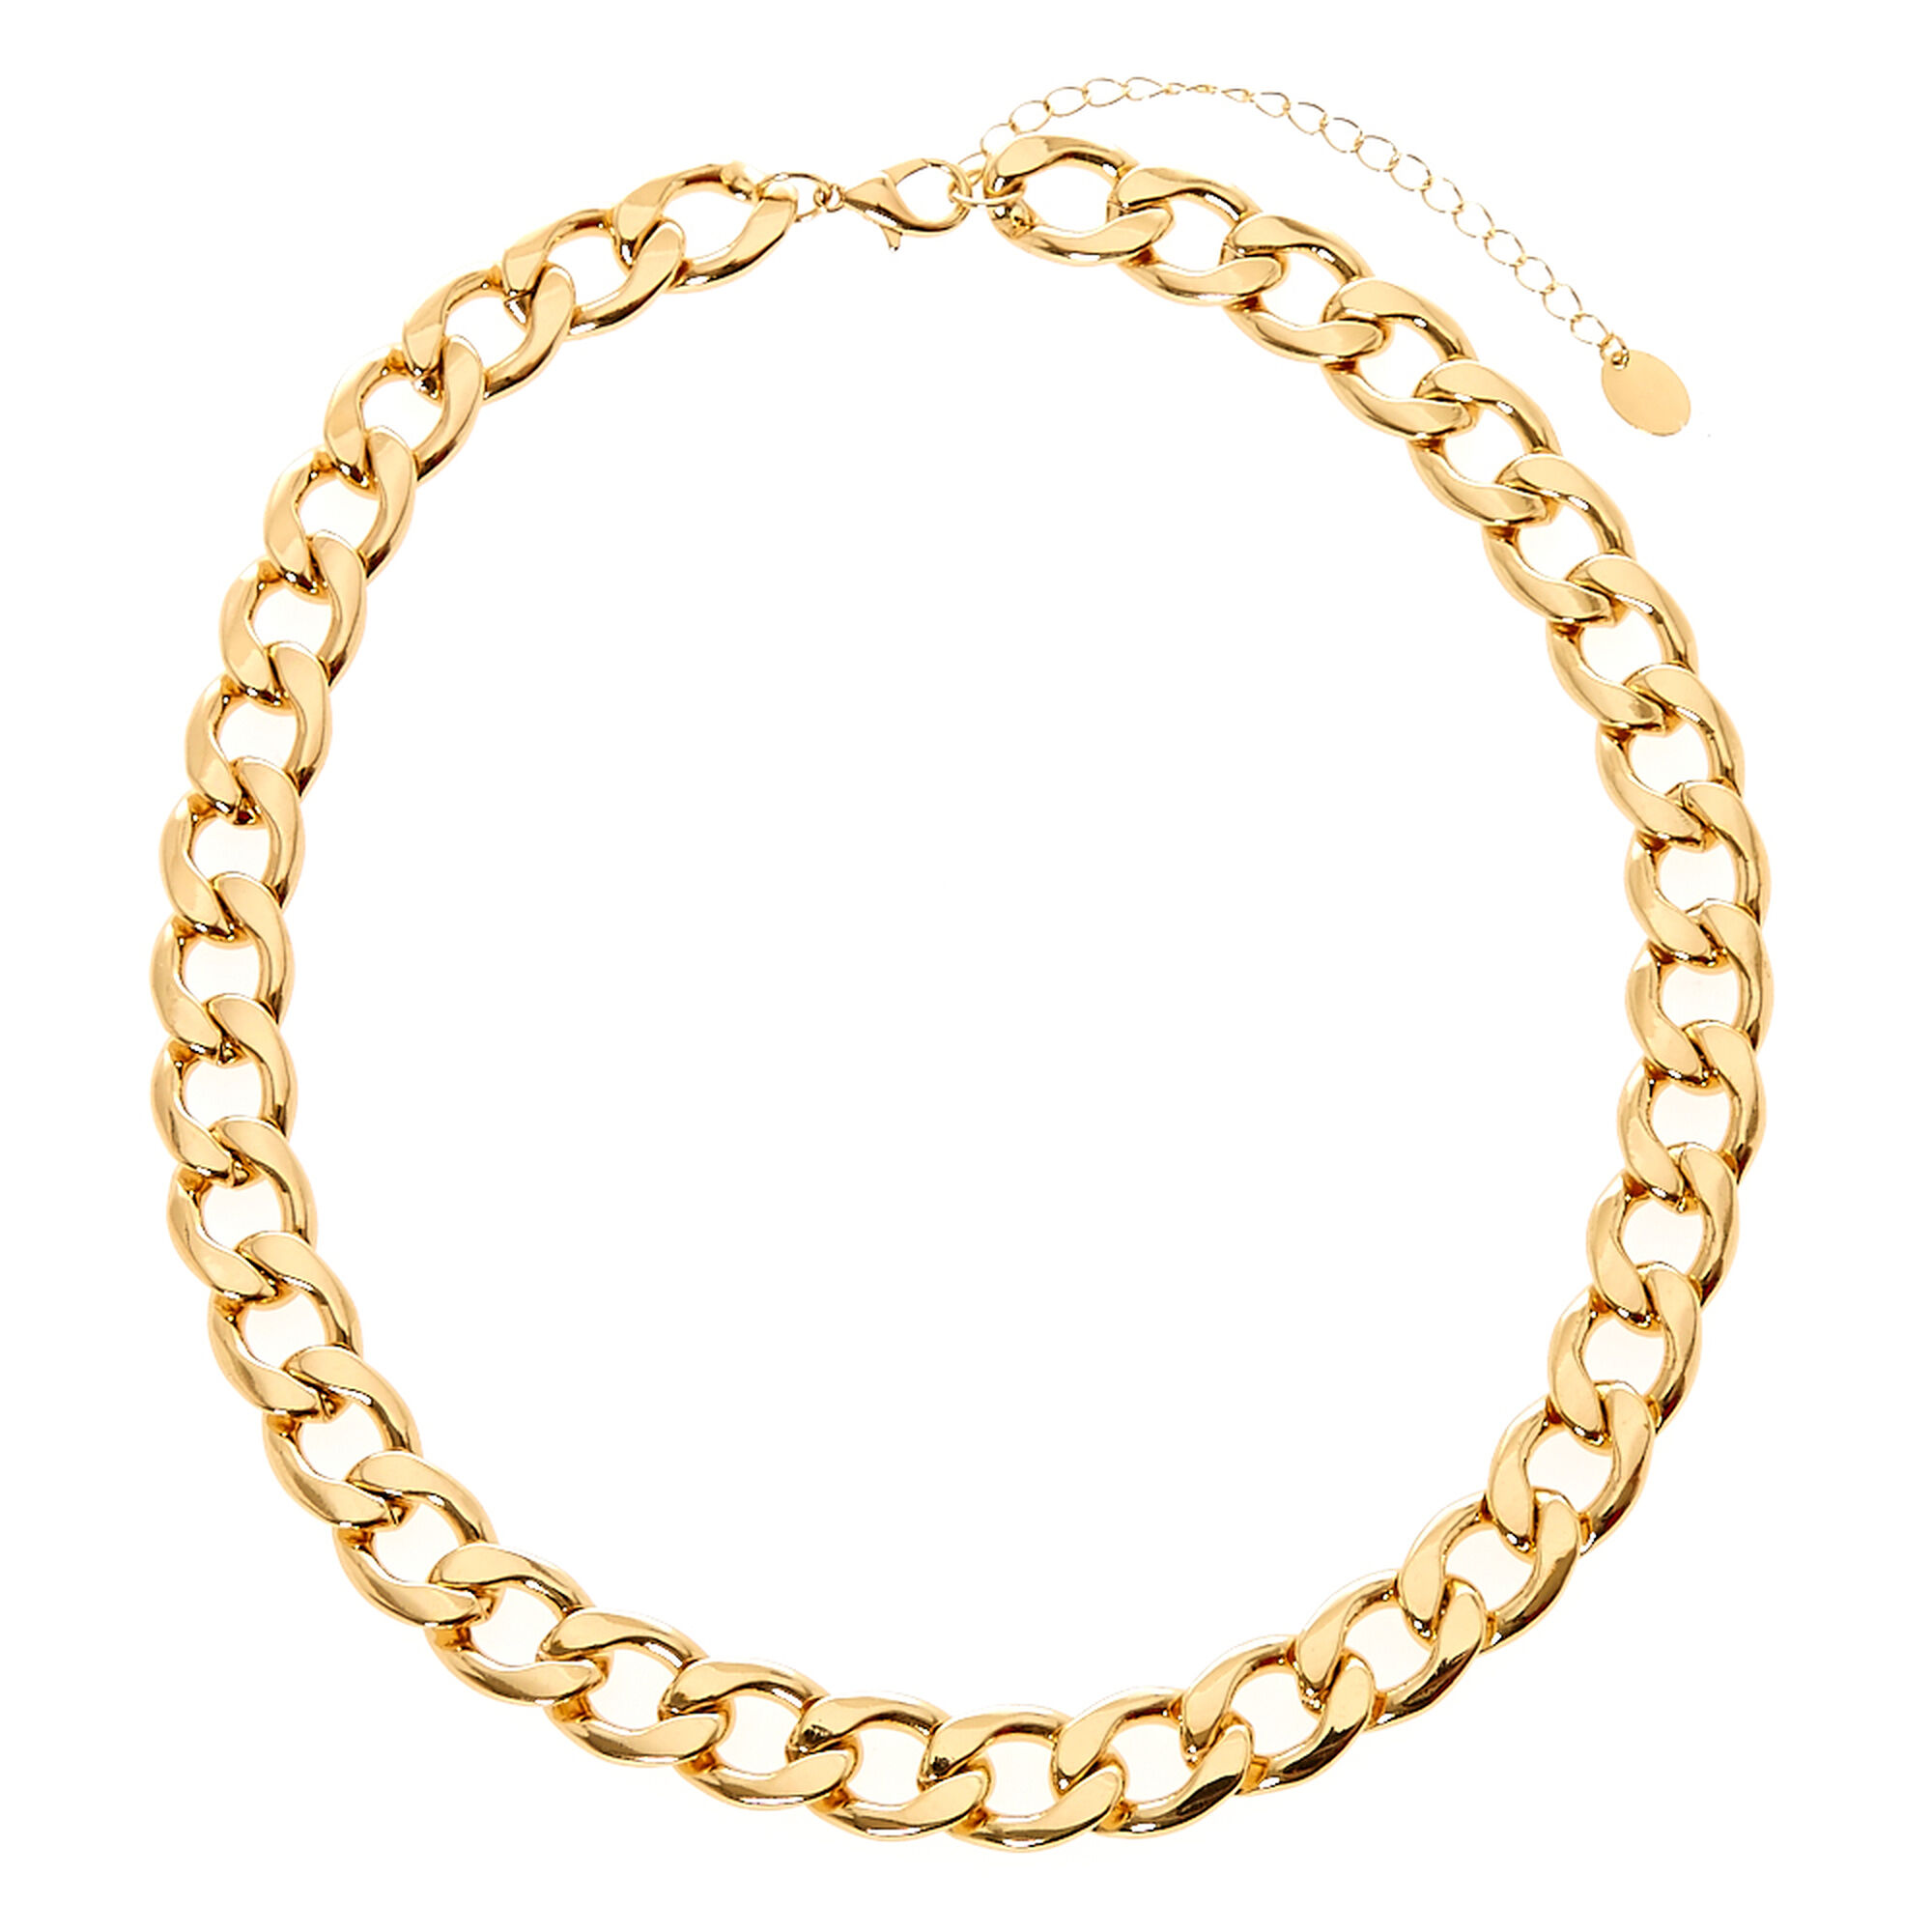 chain commercial handmade s dubai group dsc jewellery news and unveil worlds gold world the longest